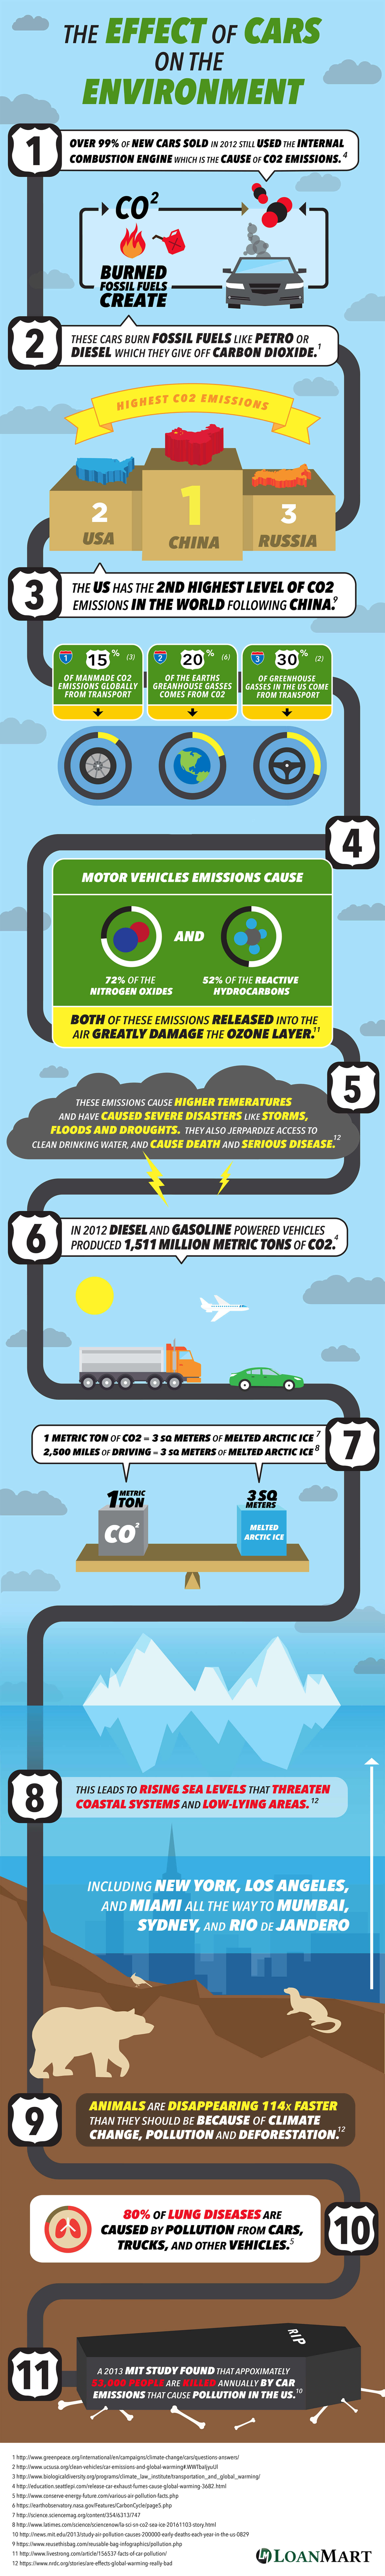 How Cars Effect the Environment